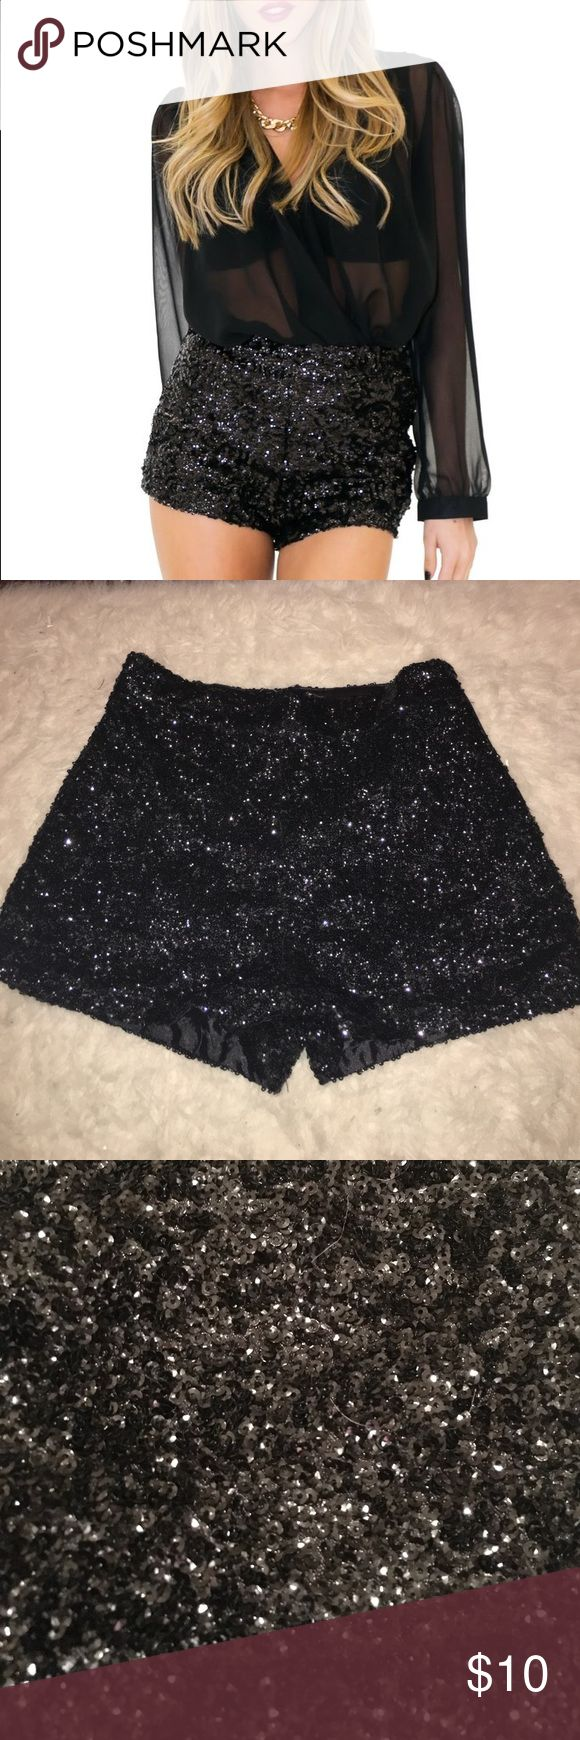 🎇Dazzling High Waisted Black Sequin Shorts S New without tags. No flaws. Size S (would fit sizes 2-4) Has a bunch of very small sequins all over, creating a gorgeous, multidimensional shine. The brand is l'atiste. *not nasty gal, tagged as so for exposure* Nasty Gal Shorts